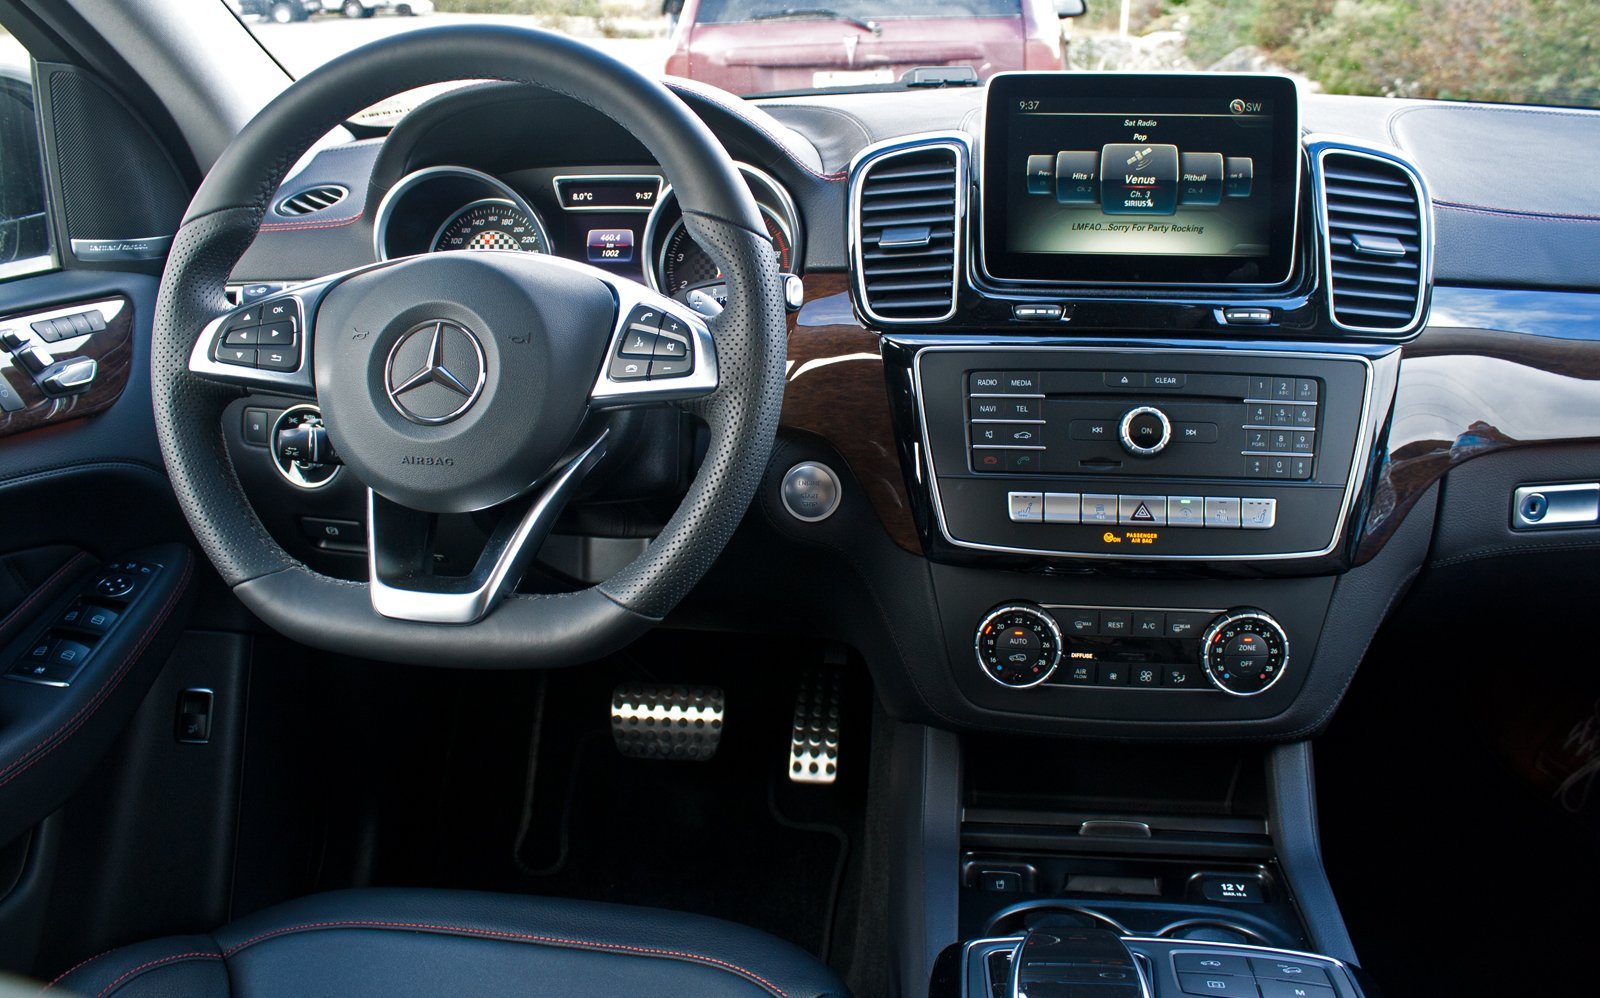 10 Things I Learned Driving the 2016 Mercedes-Benz GLE Coupe